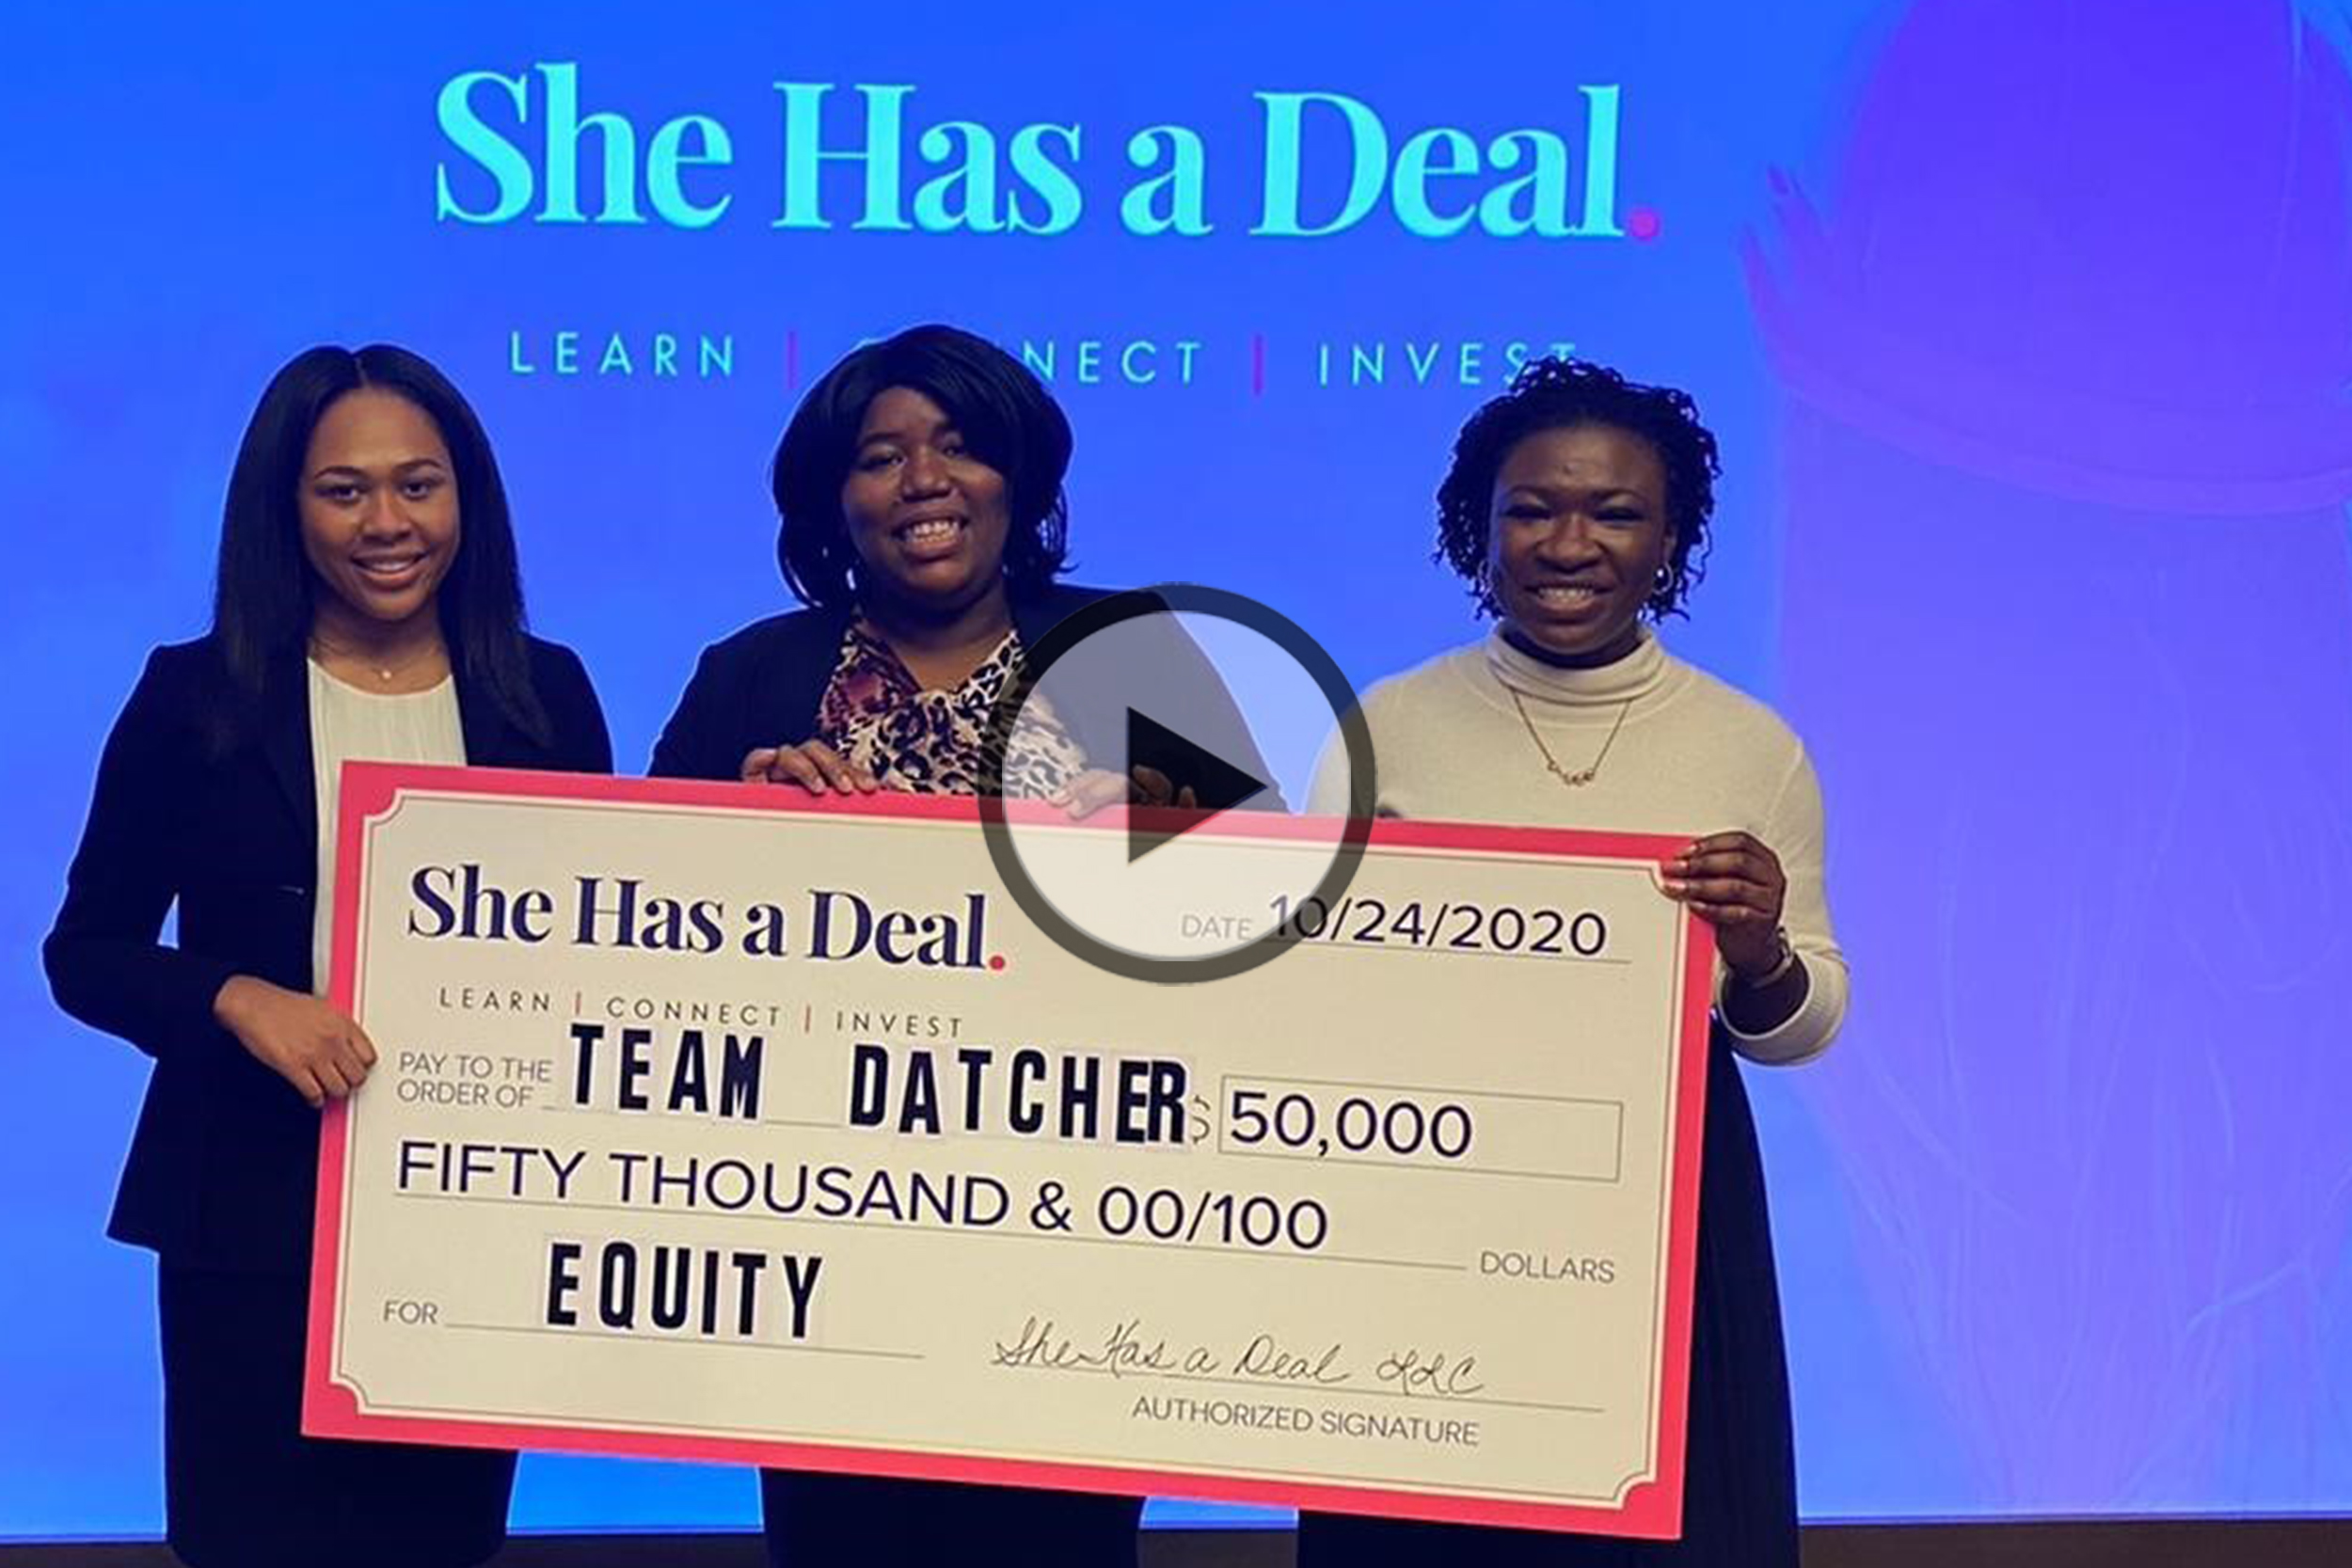 Kristen Collins, Lera Covington, and Joanne Angbazo holding their prize for winning She Has a Deal: a check for $50,000 in equity